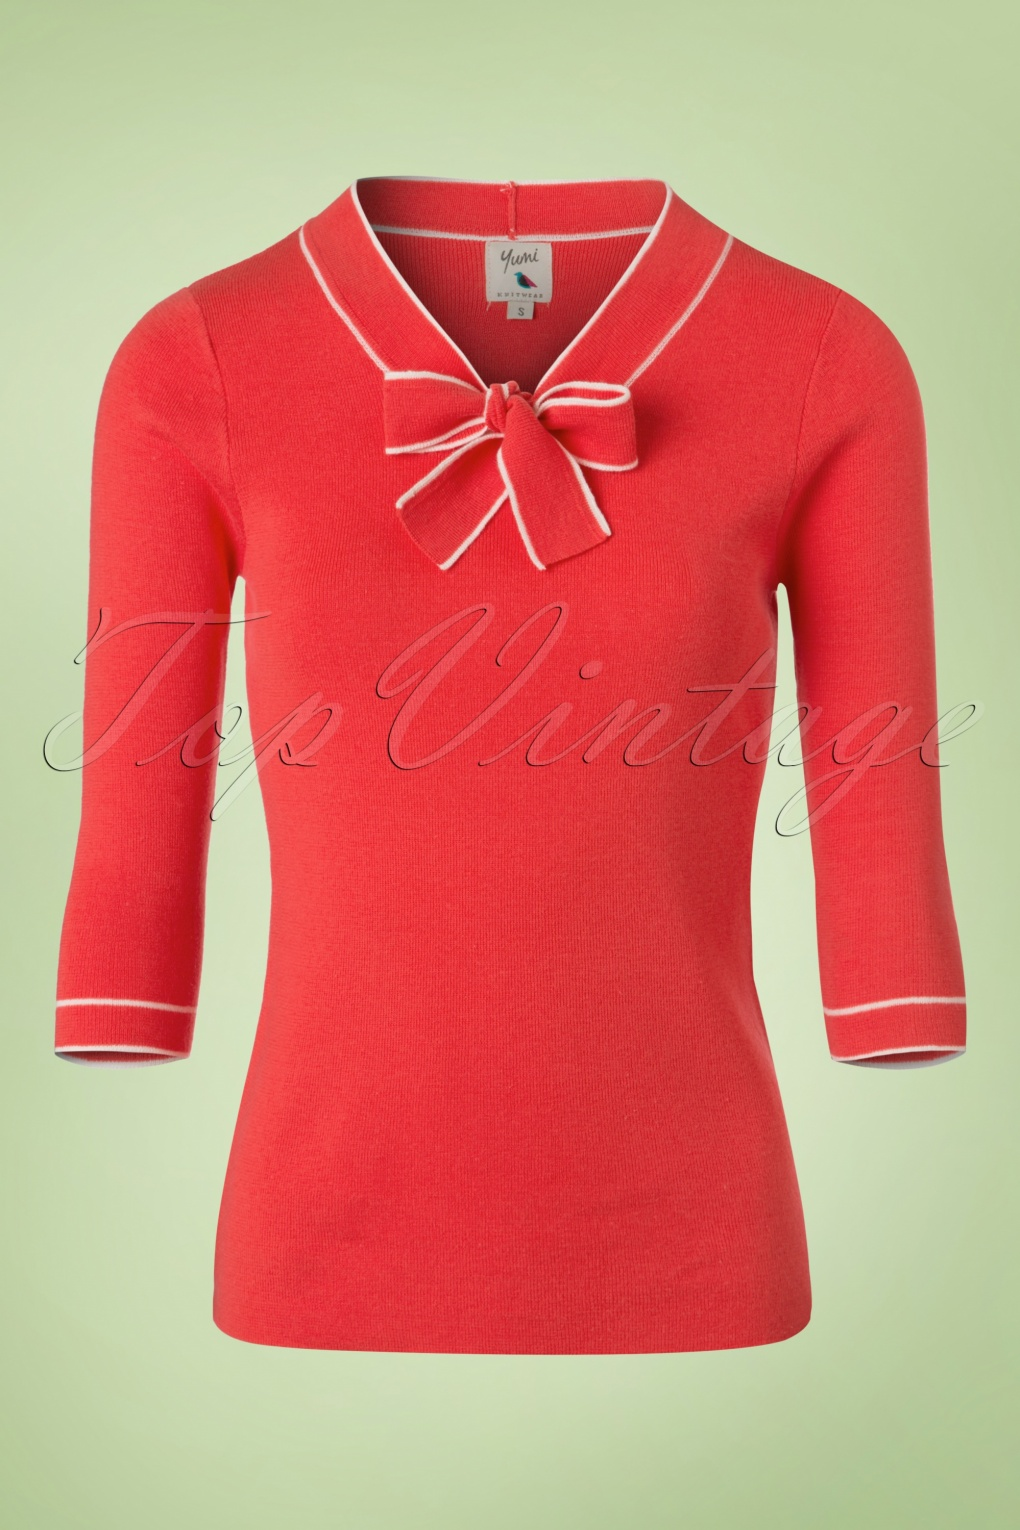 Shop 1960s Style Blouses, Shirts and Tops 60s Sarah Sailor Jumper in Coral Red £59.34 AT vintagedancer.com